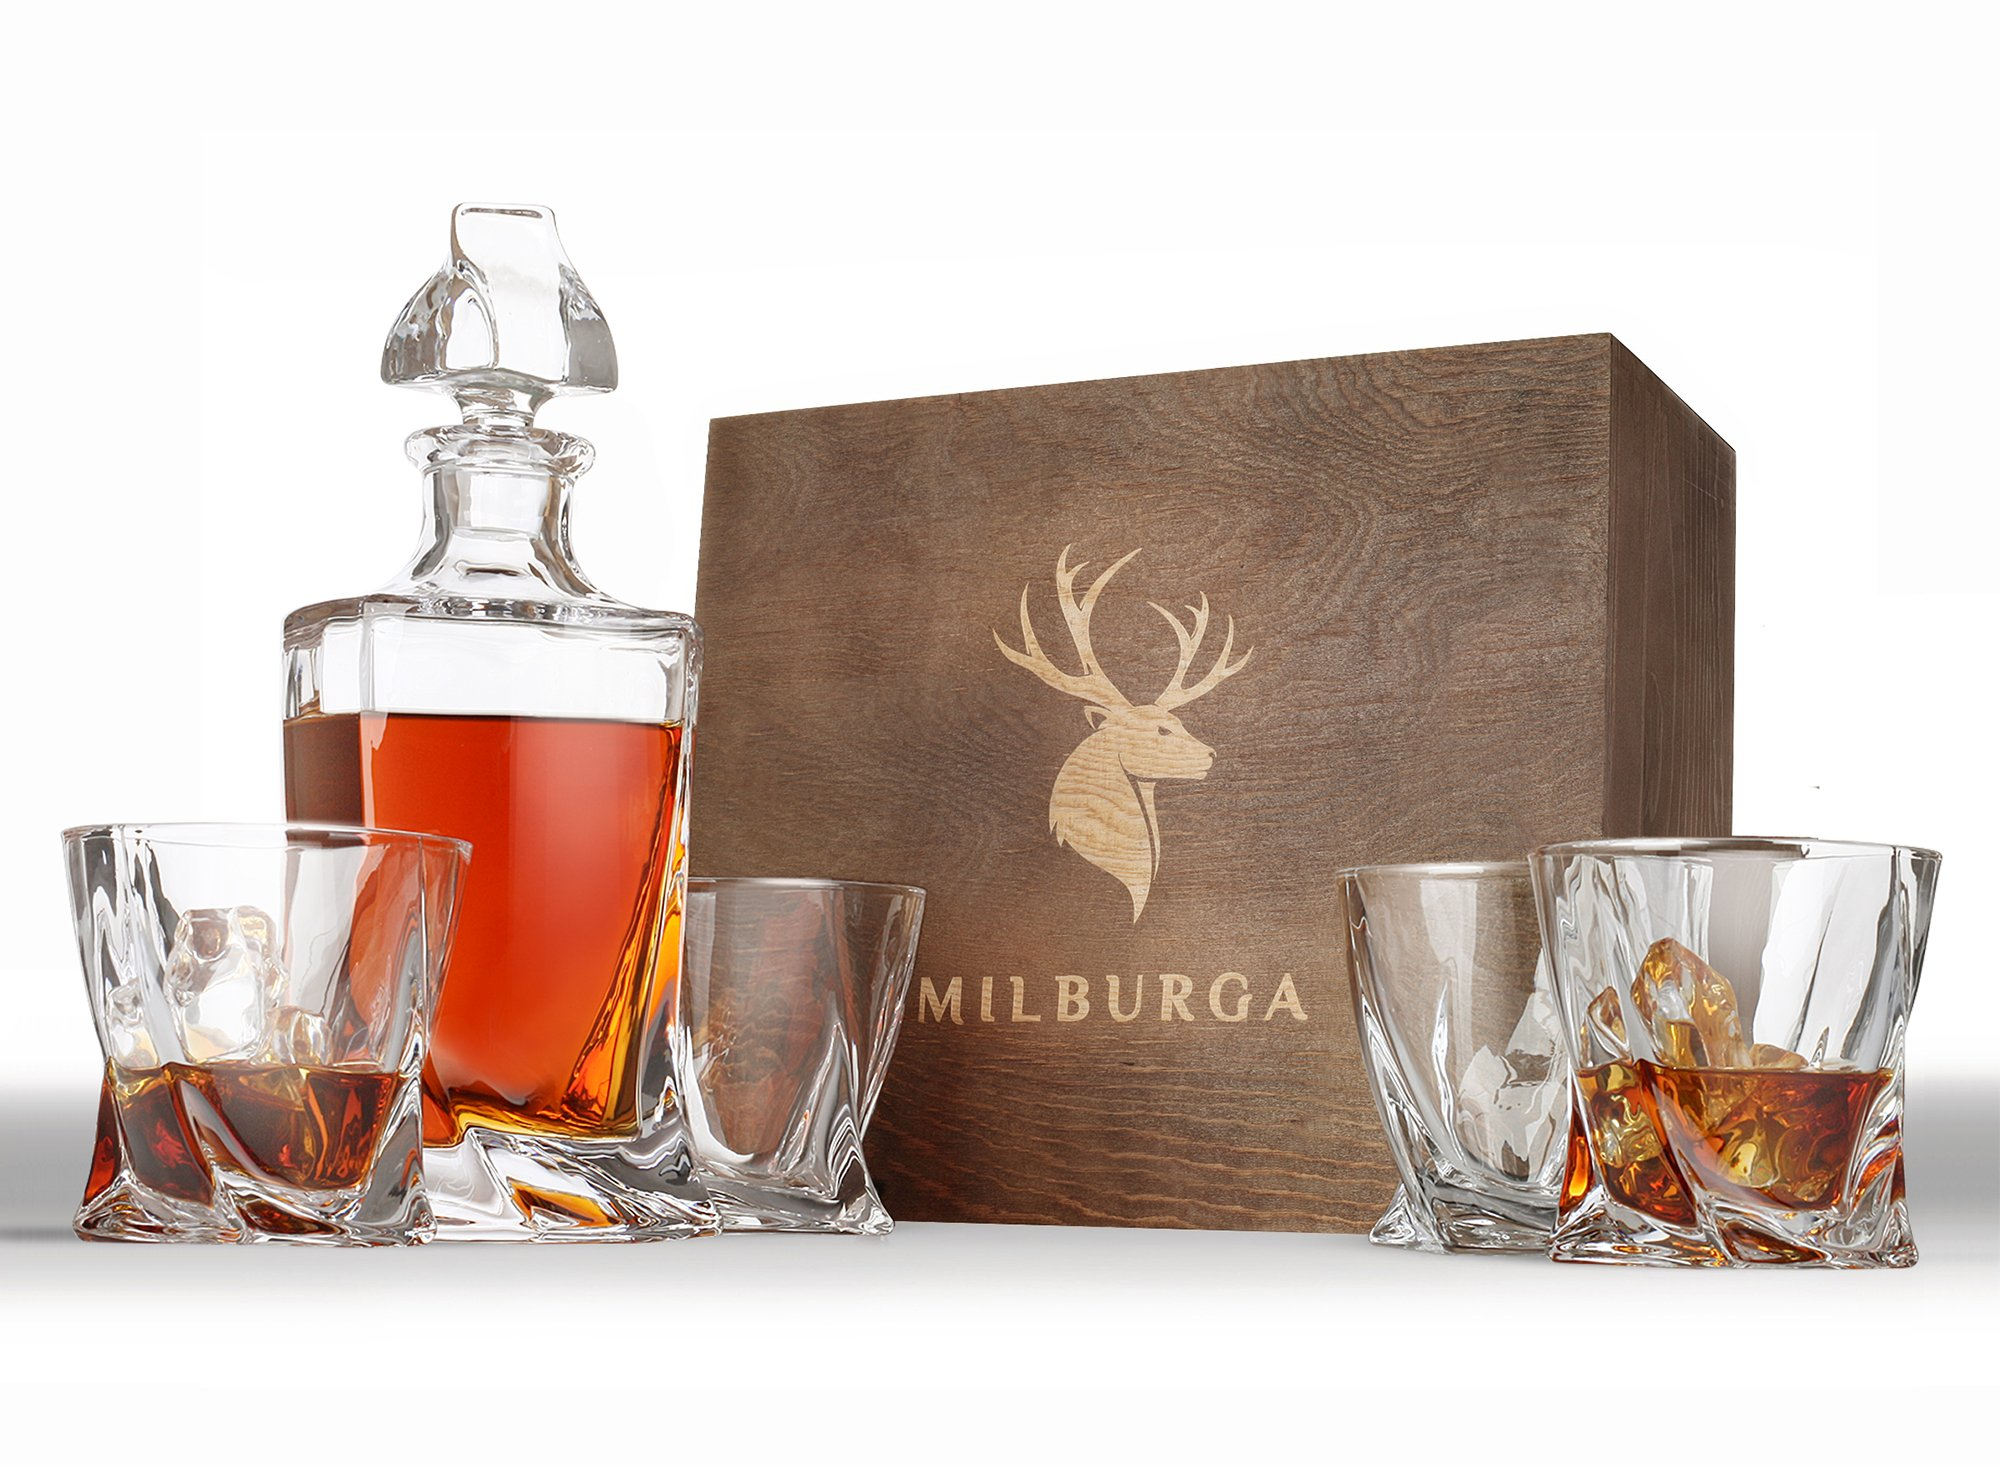 Elegant 5-Piece Whiskey Decanter Set with 4 Twist Glasses in Hand Crafted Wooden Box – Lead-Free Crystal Bourbon Decanter. Dishwasher Safe, Balanced and Regal Gift Set for Scotch or Liquor by Milburga